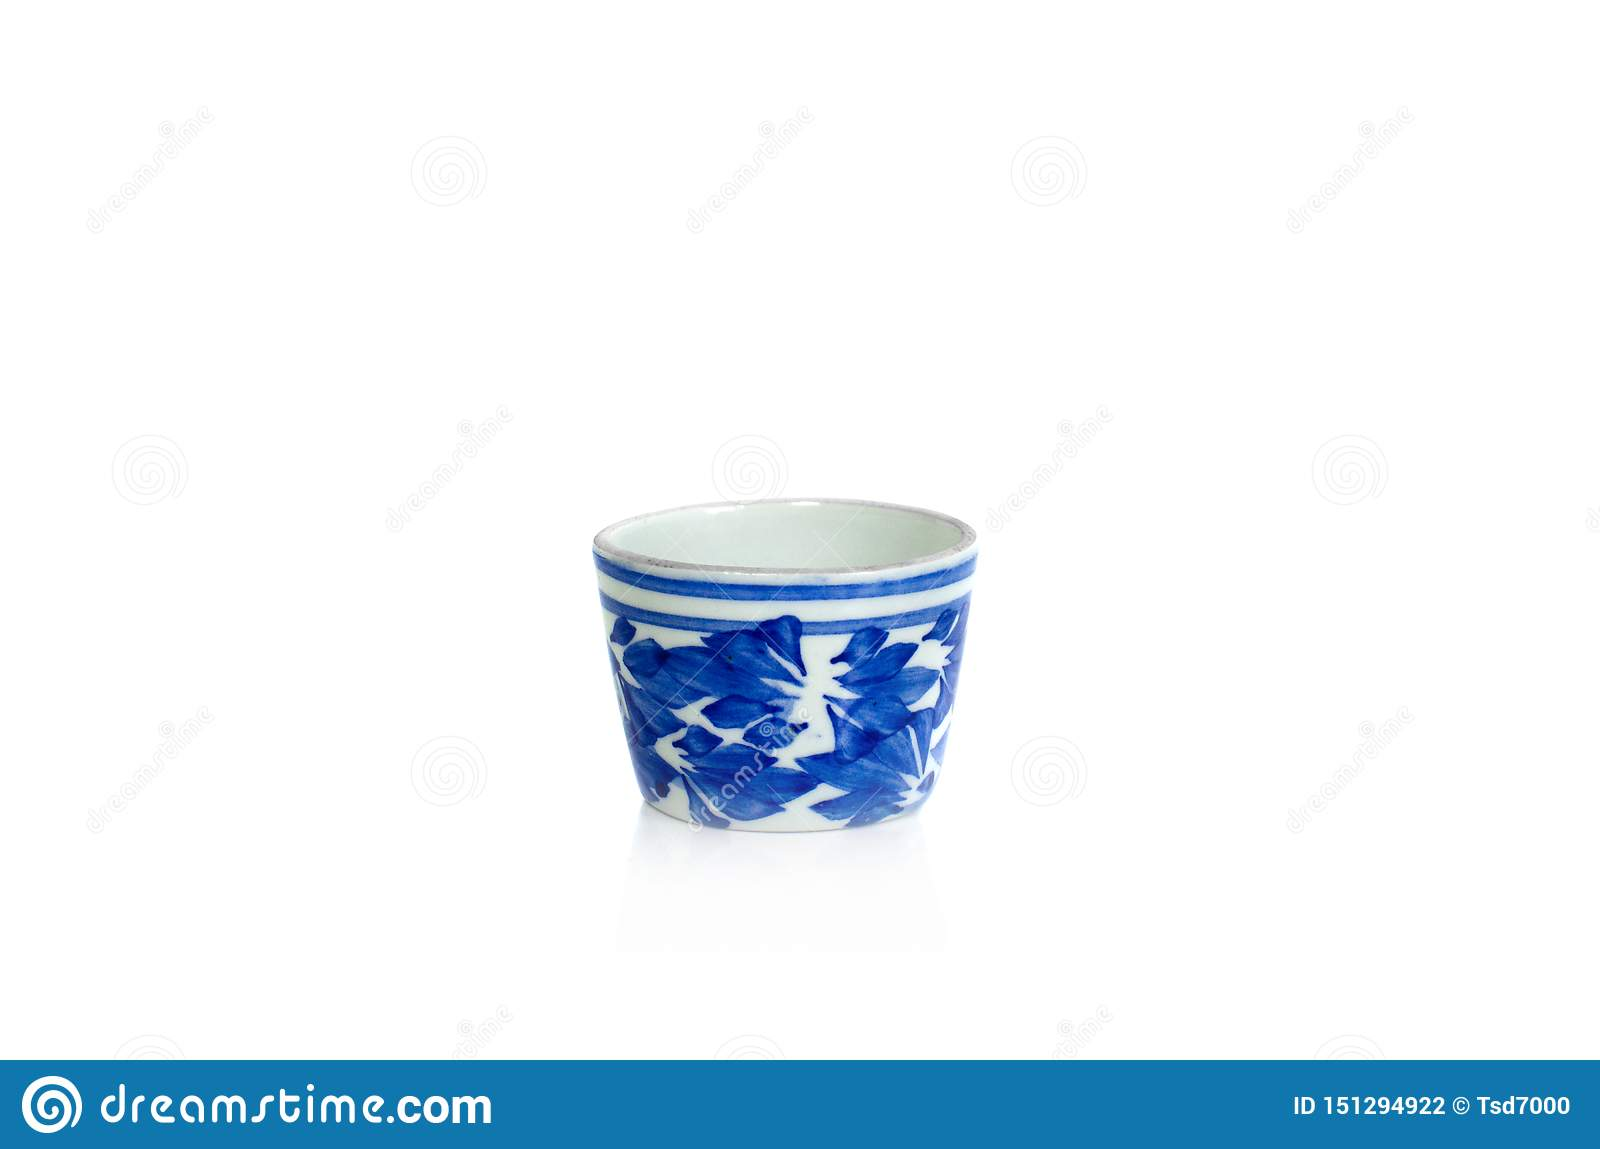 Porcelain tea cup isolate on white background